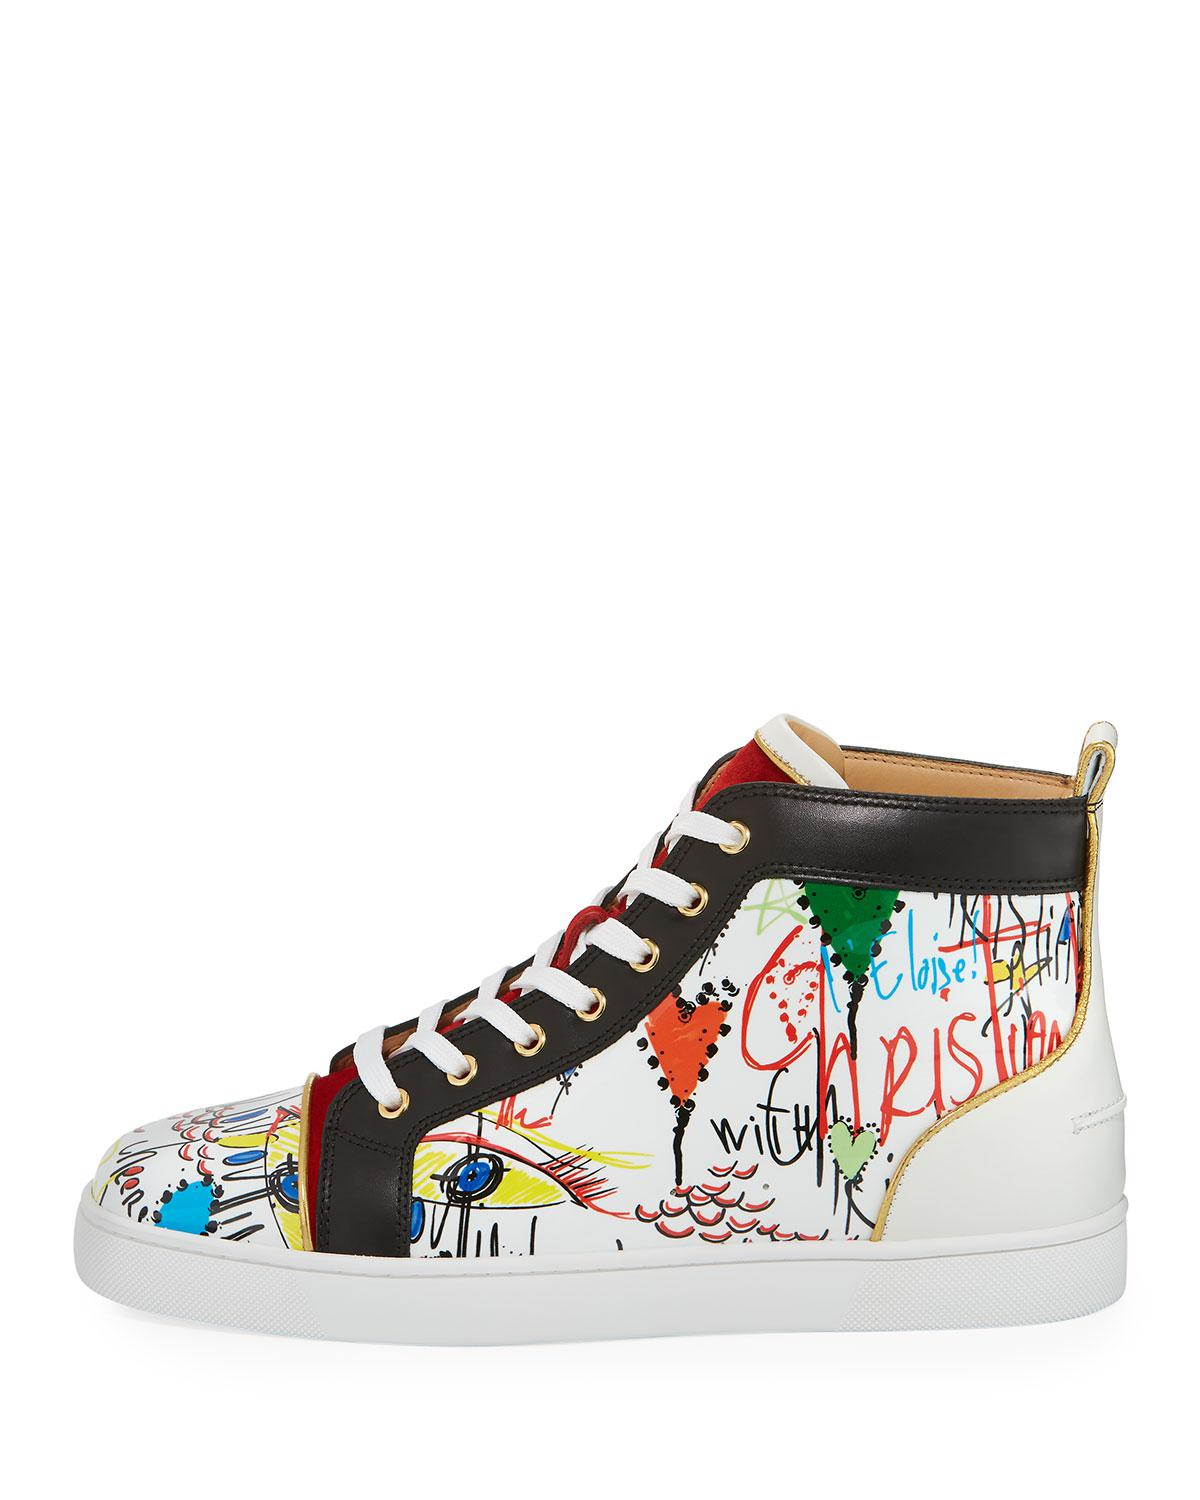 d7ca0f8fdabe Lyst - Christian Louboutin Louis Loubi Tag Men s Lace-up Sneaker in ...